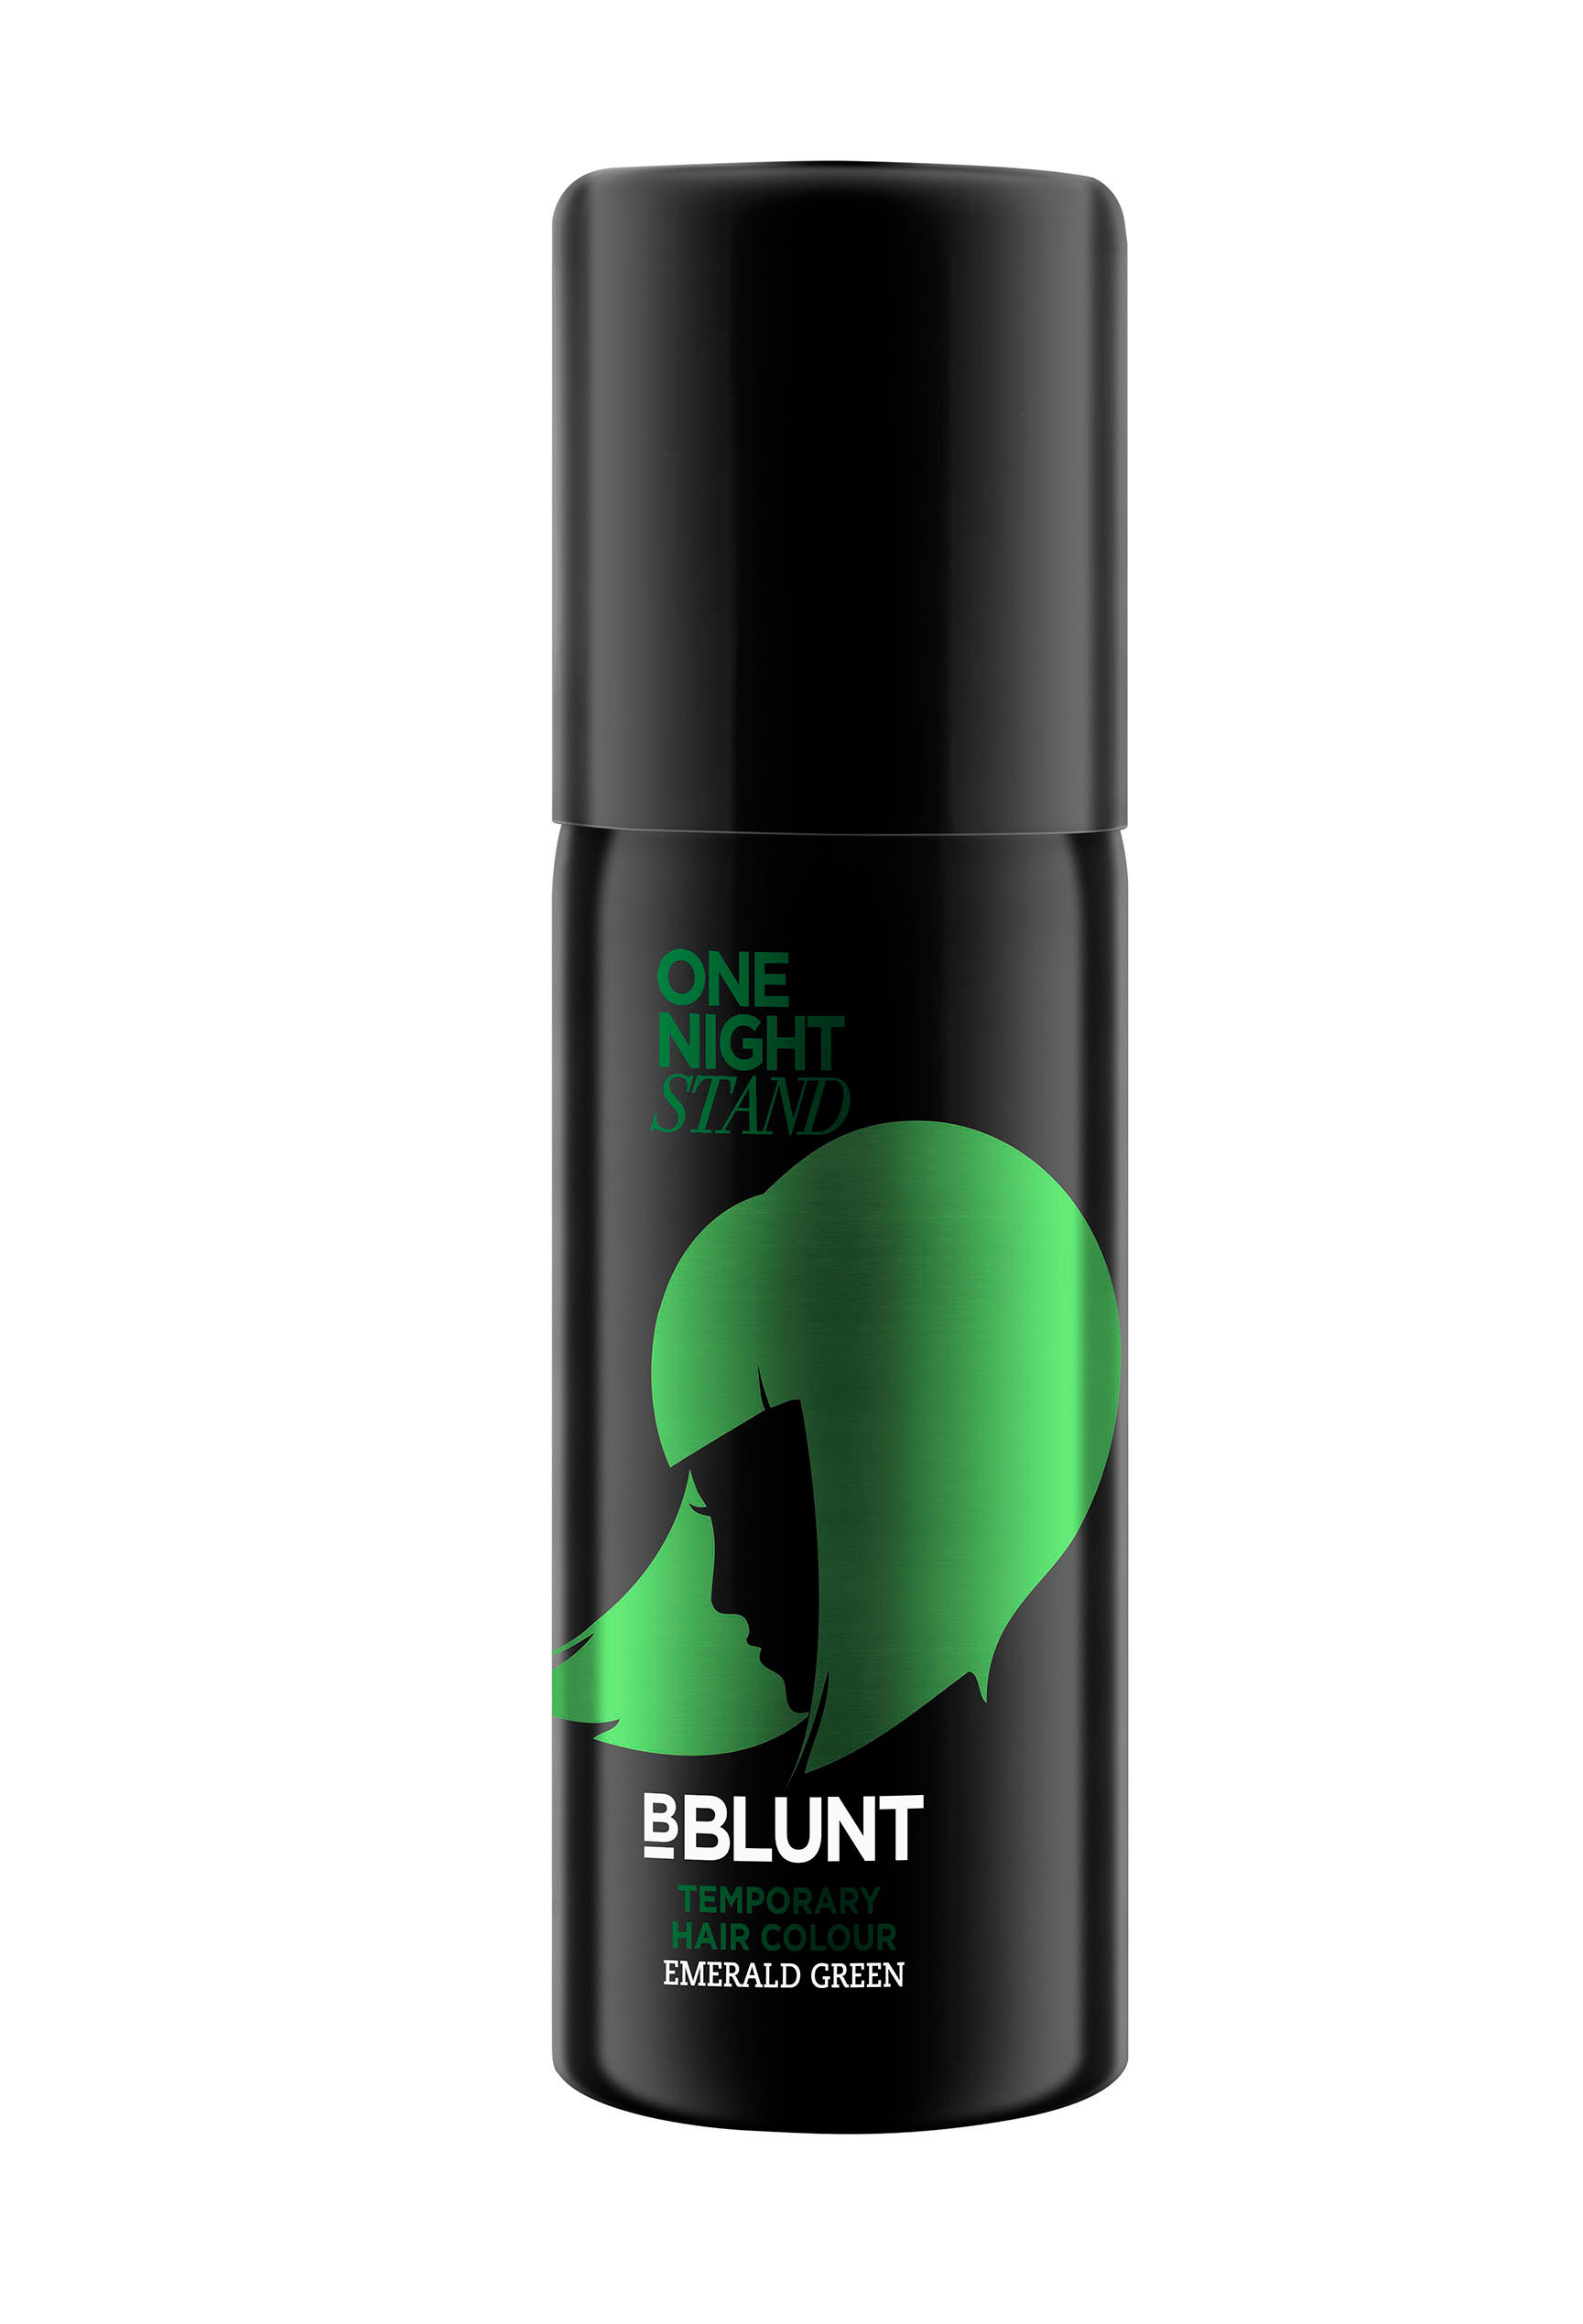 Bblunt One Night Stand Temporary Hair Colour - Emerald Green